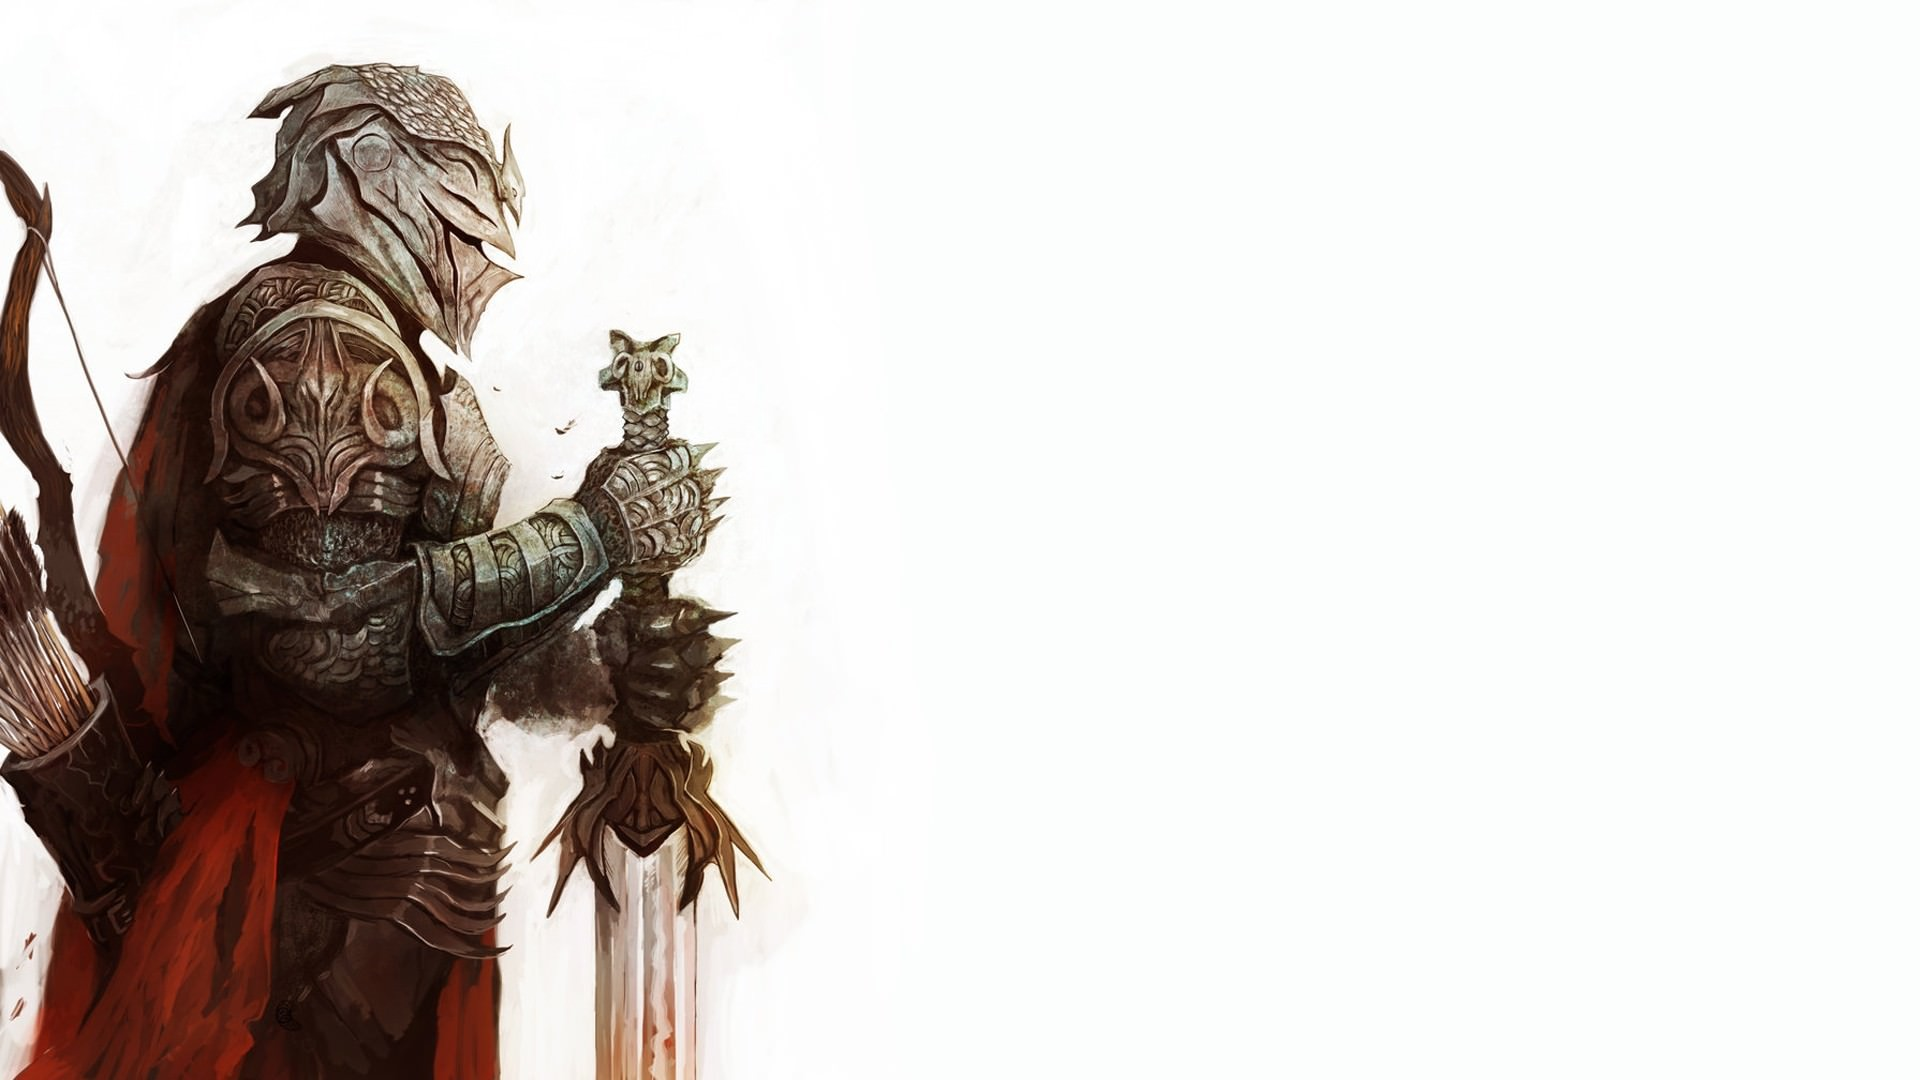 1920x1080 Archers Armor Digital Art Wallpaper by Digital Art